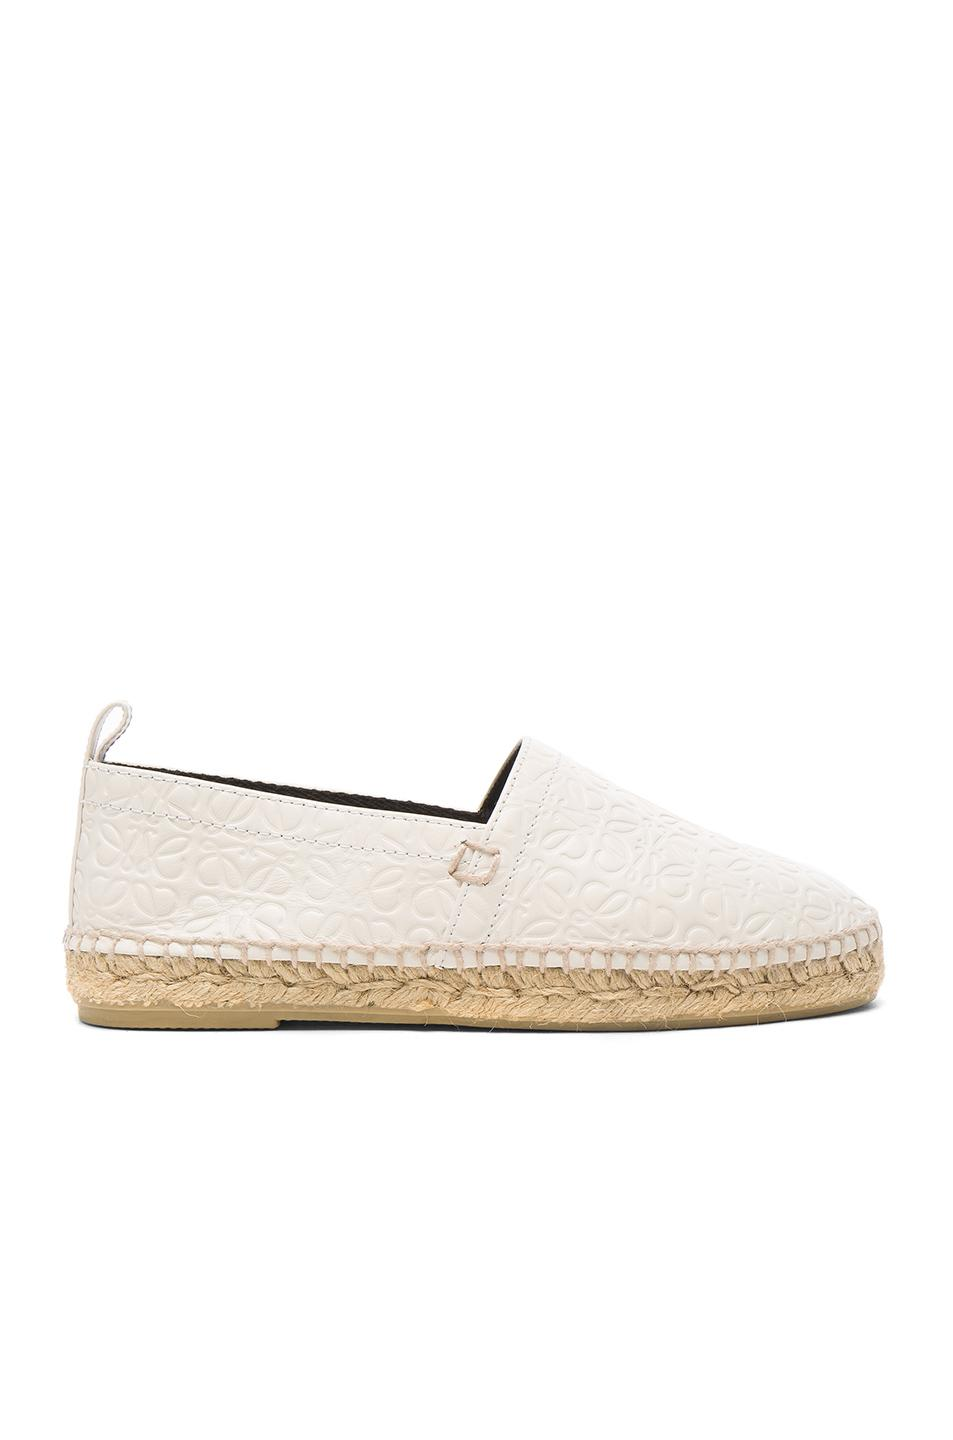 Lyst Loewe Leather All Over Repeat Espadrilles In White